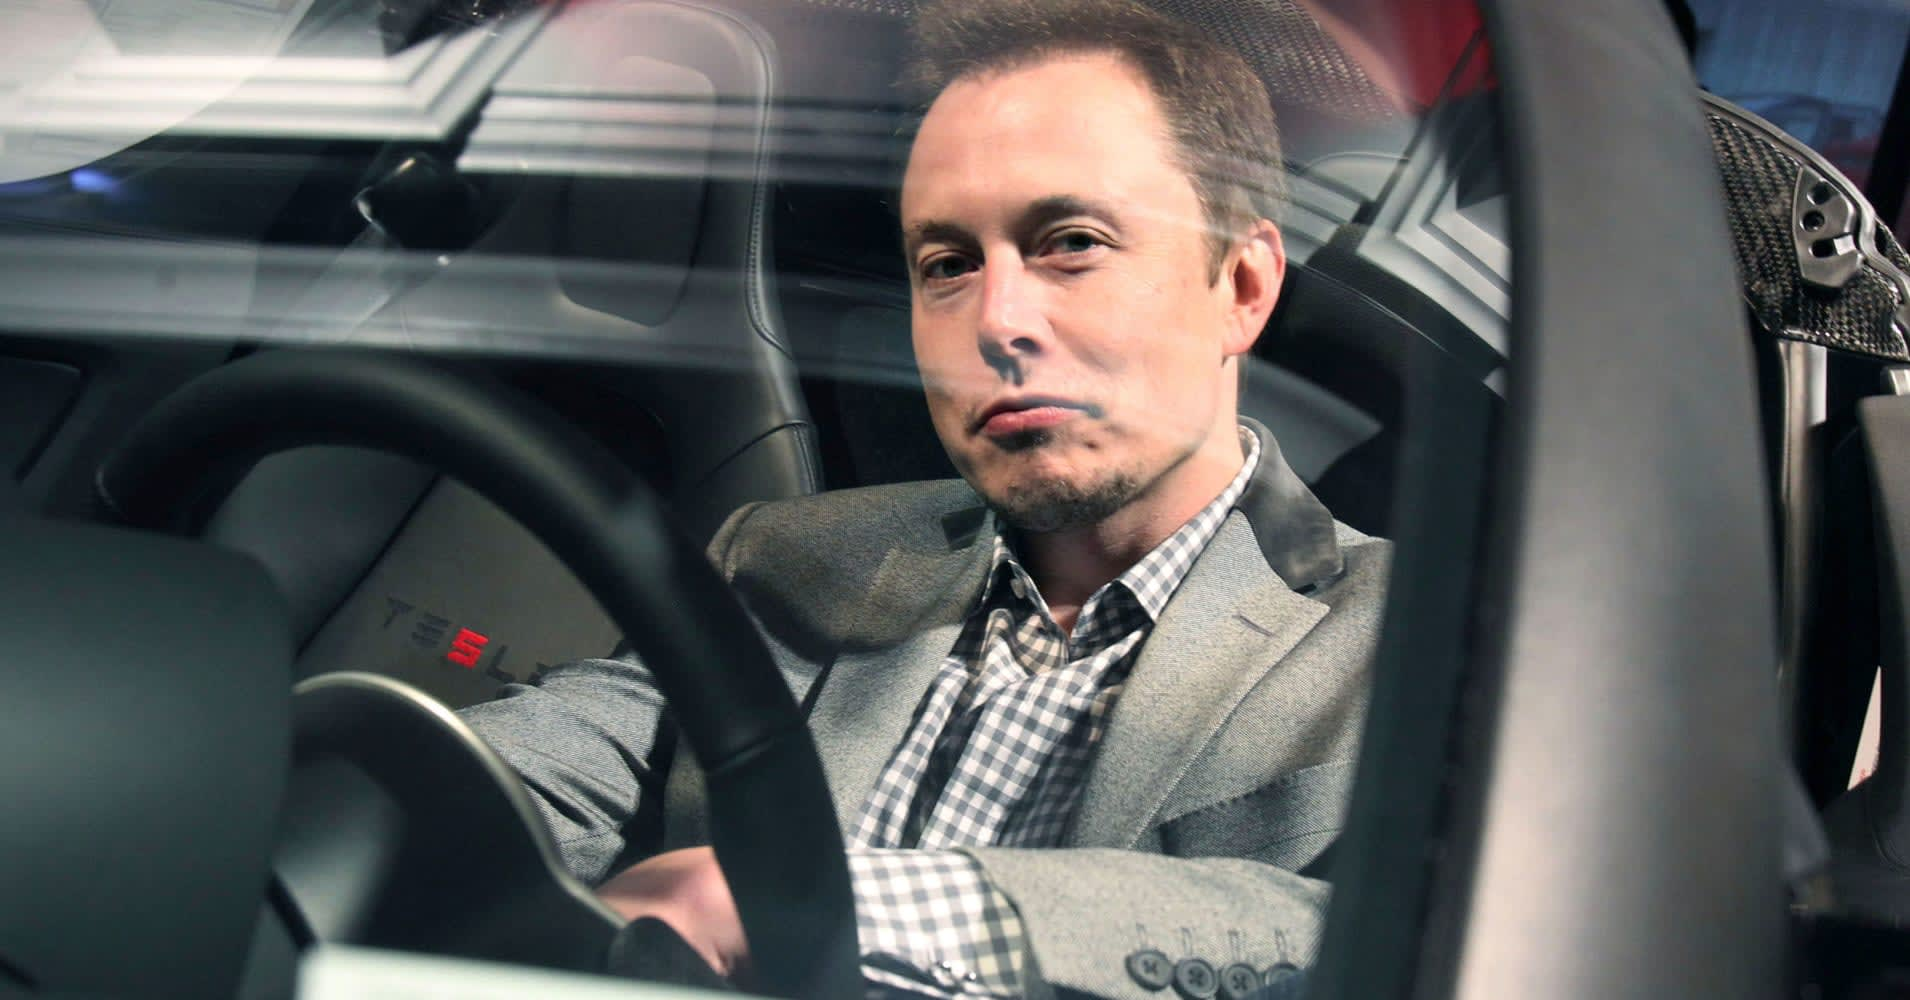 Elon Musk's extreme micromanagement has wasted time and money at Tesla, insiders say